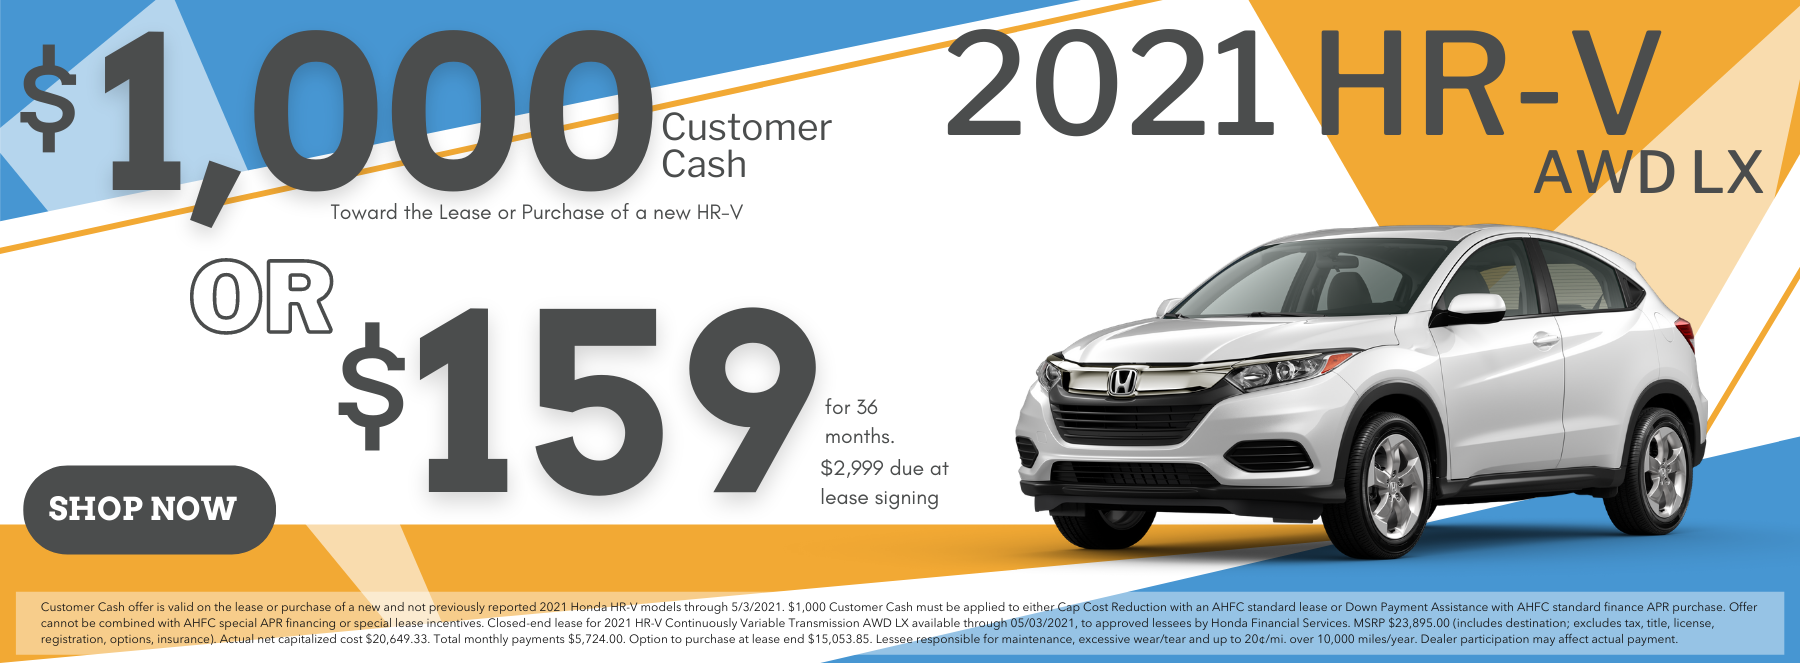 2021 HR-V Lease March